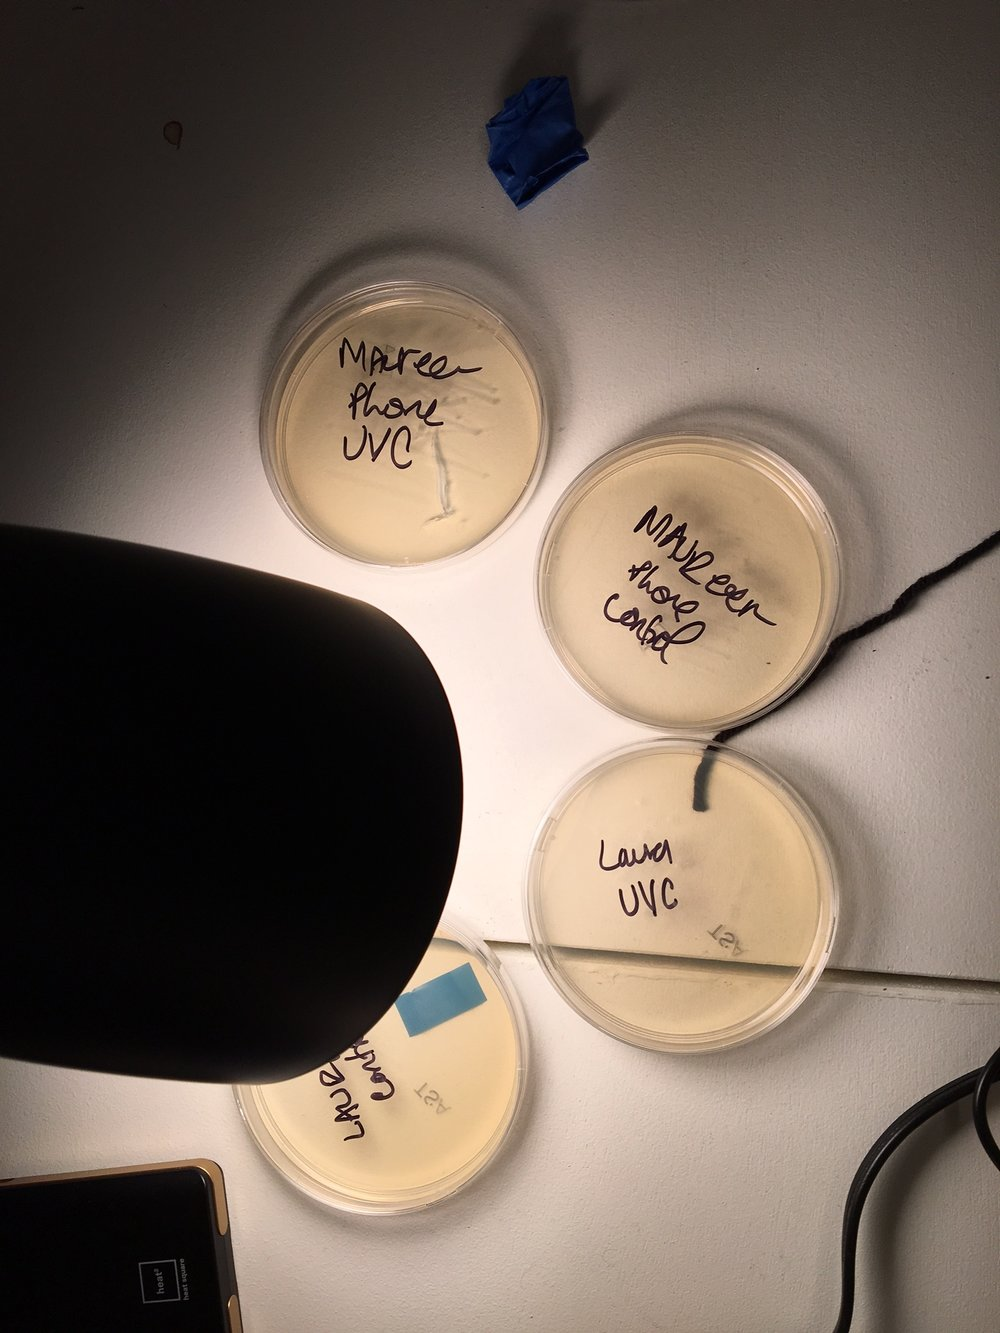 Growing bacteria sampled from two household objects